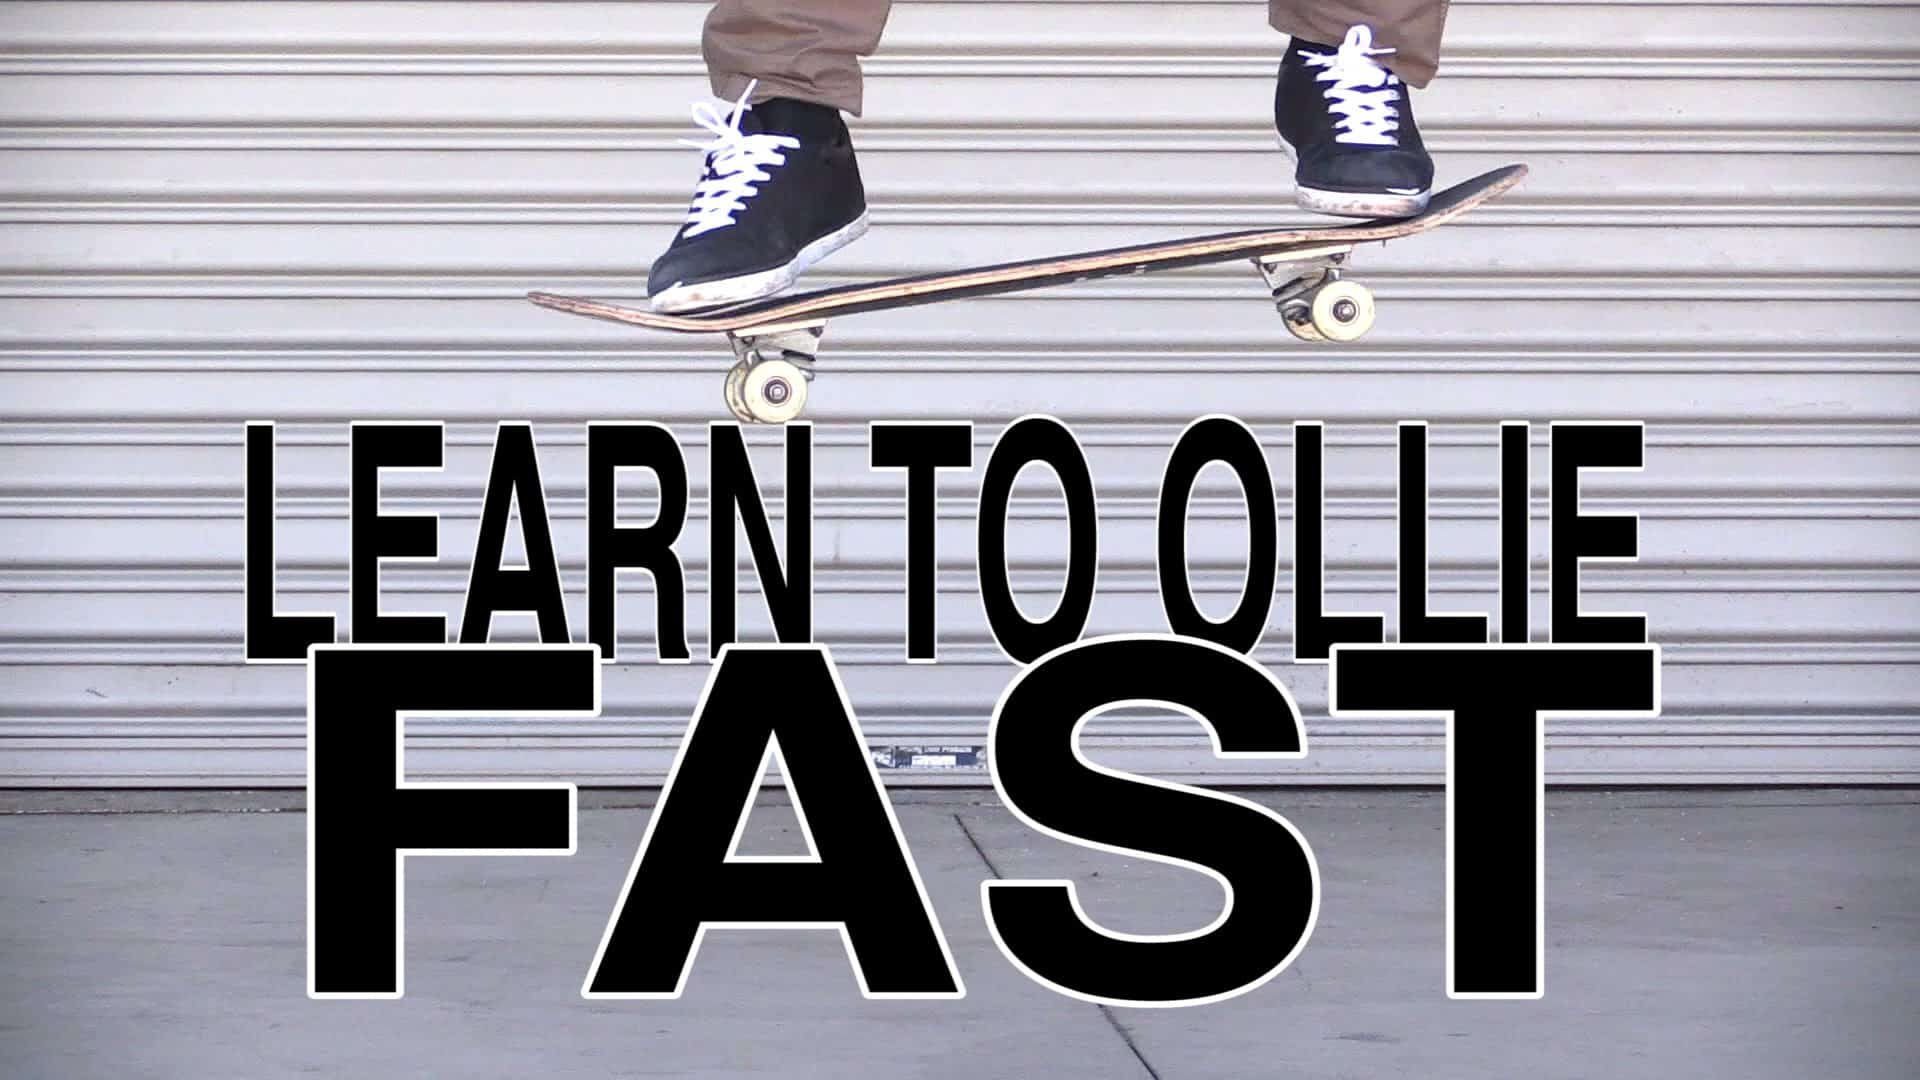 How To Ollie Tutorials For Skateboard Beginners